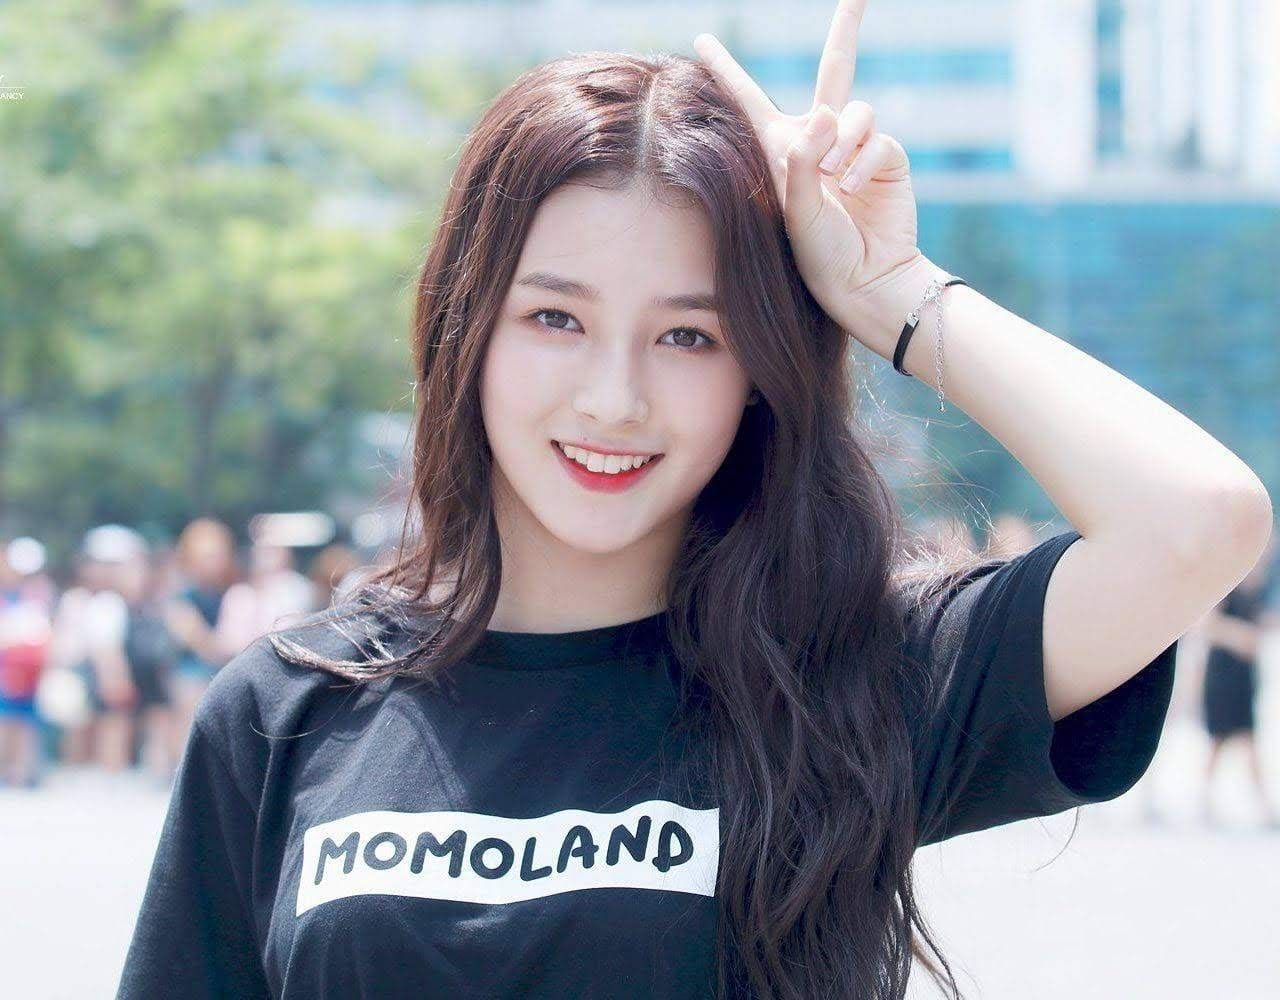 Nancy, Momoland, Kpop, Music, Showbiz, Picture